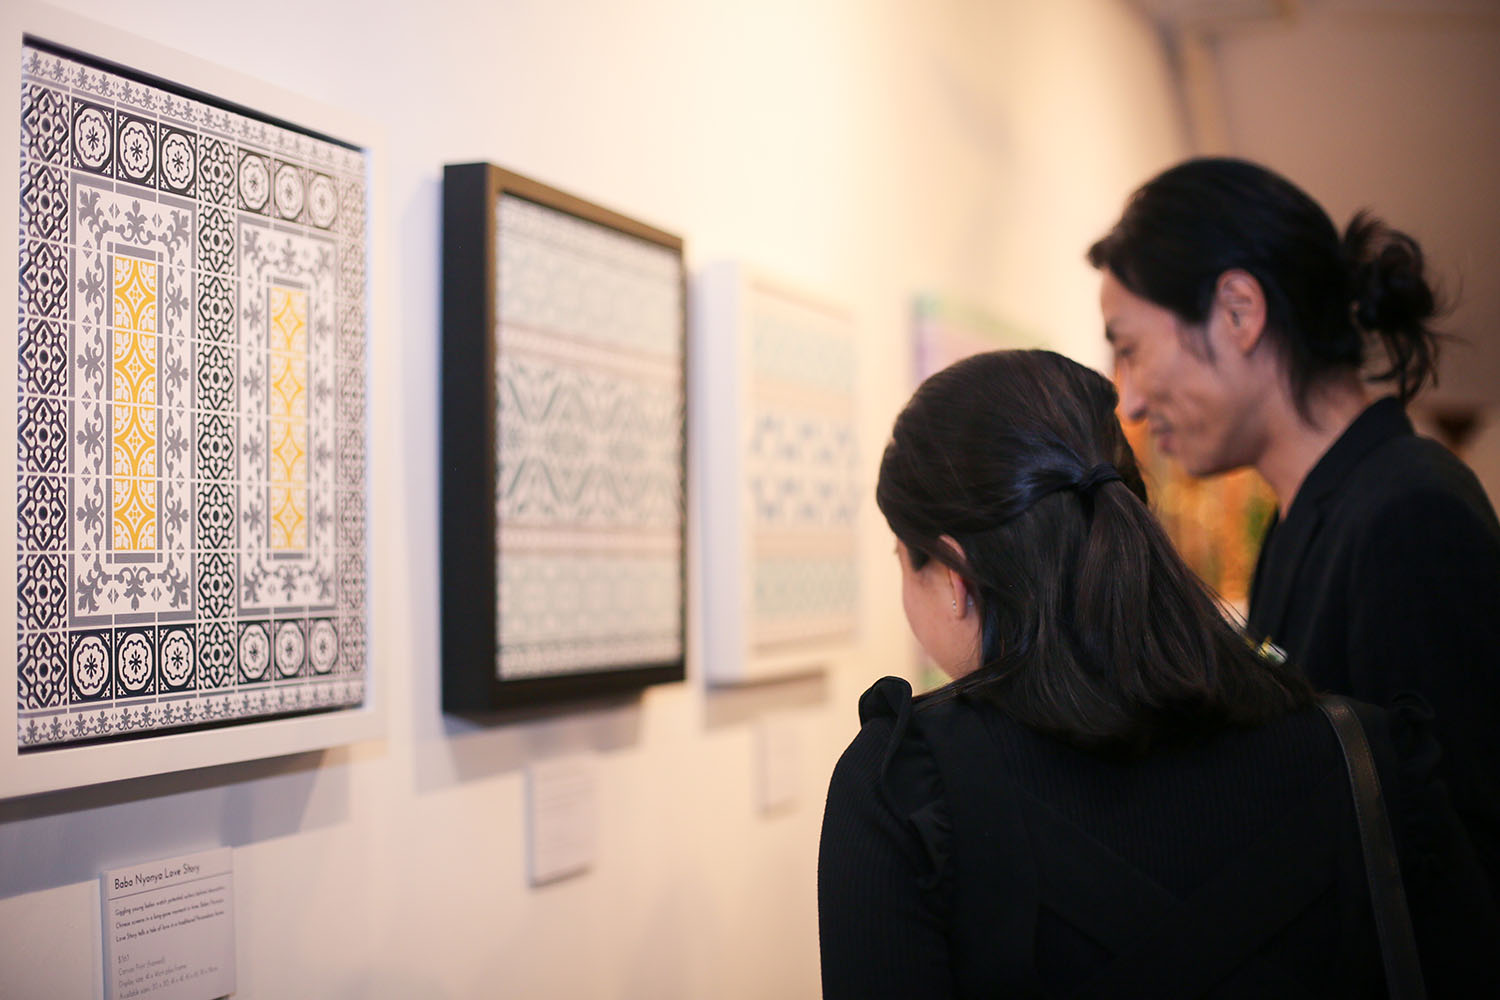 Visitors checking out the tale behind    Baba Nyonya Love Story